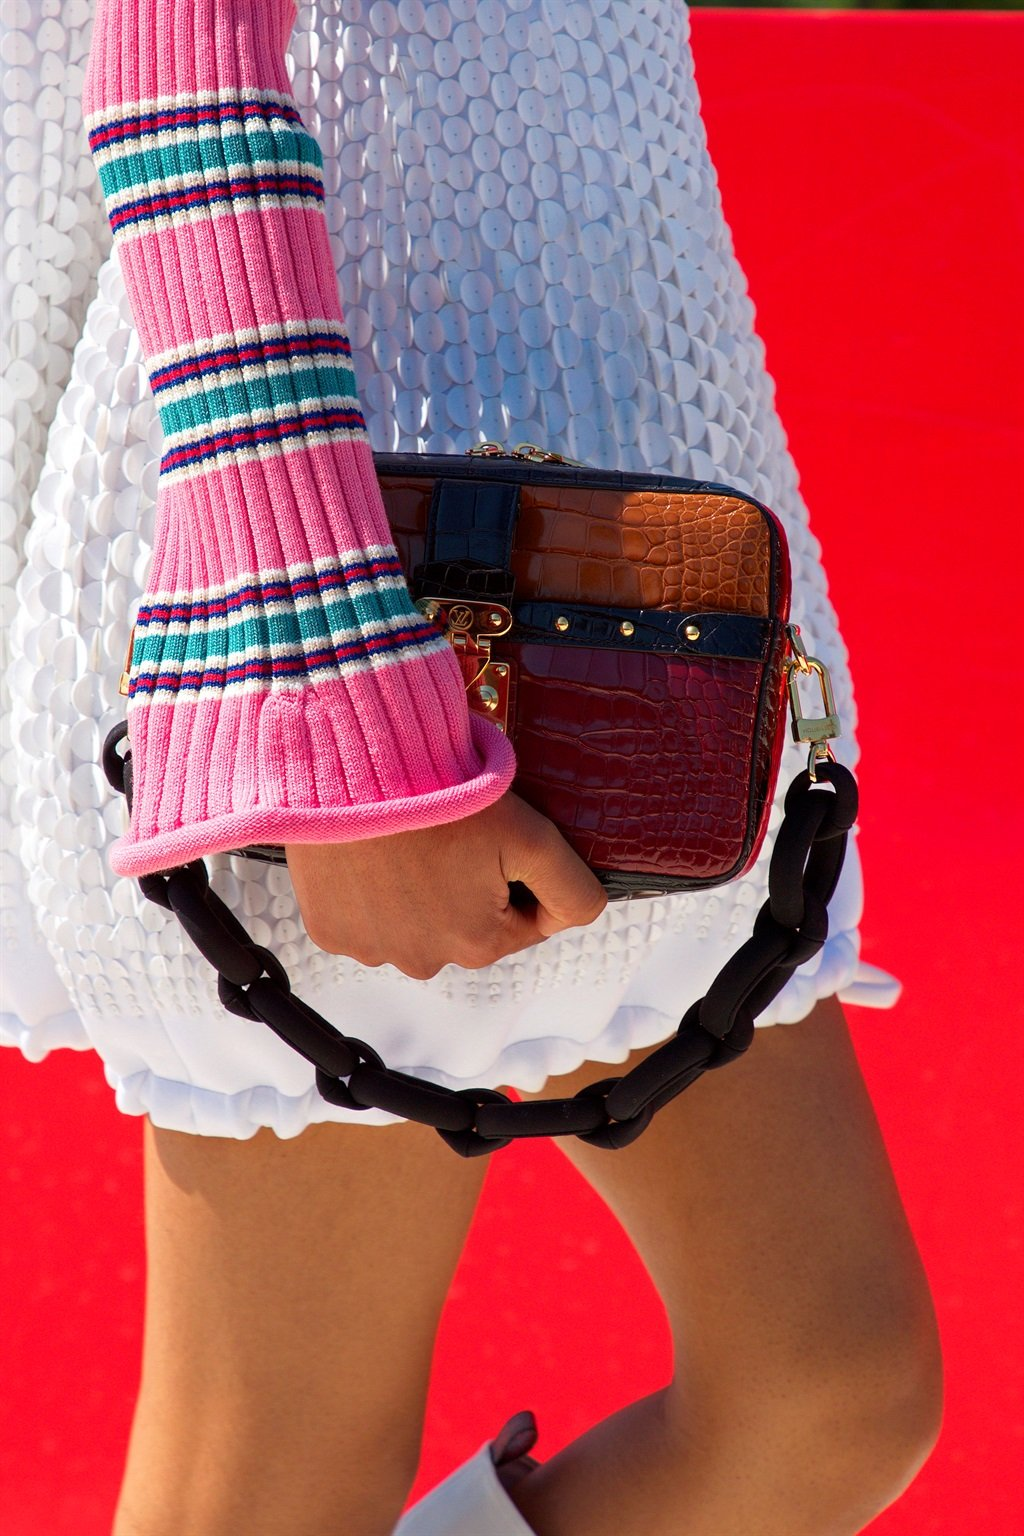 In this image posted on June 15, Bag detail from the